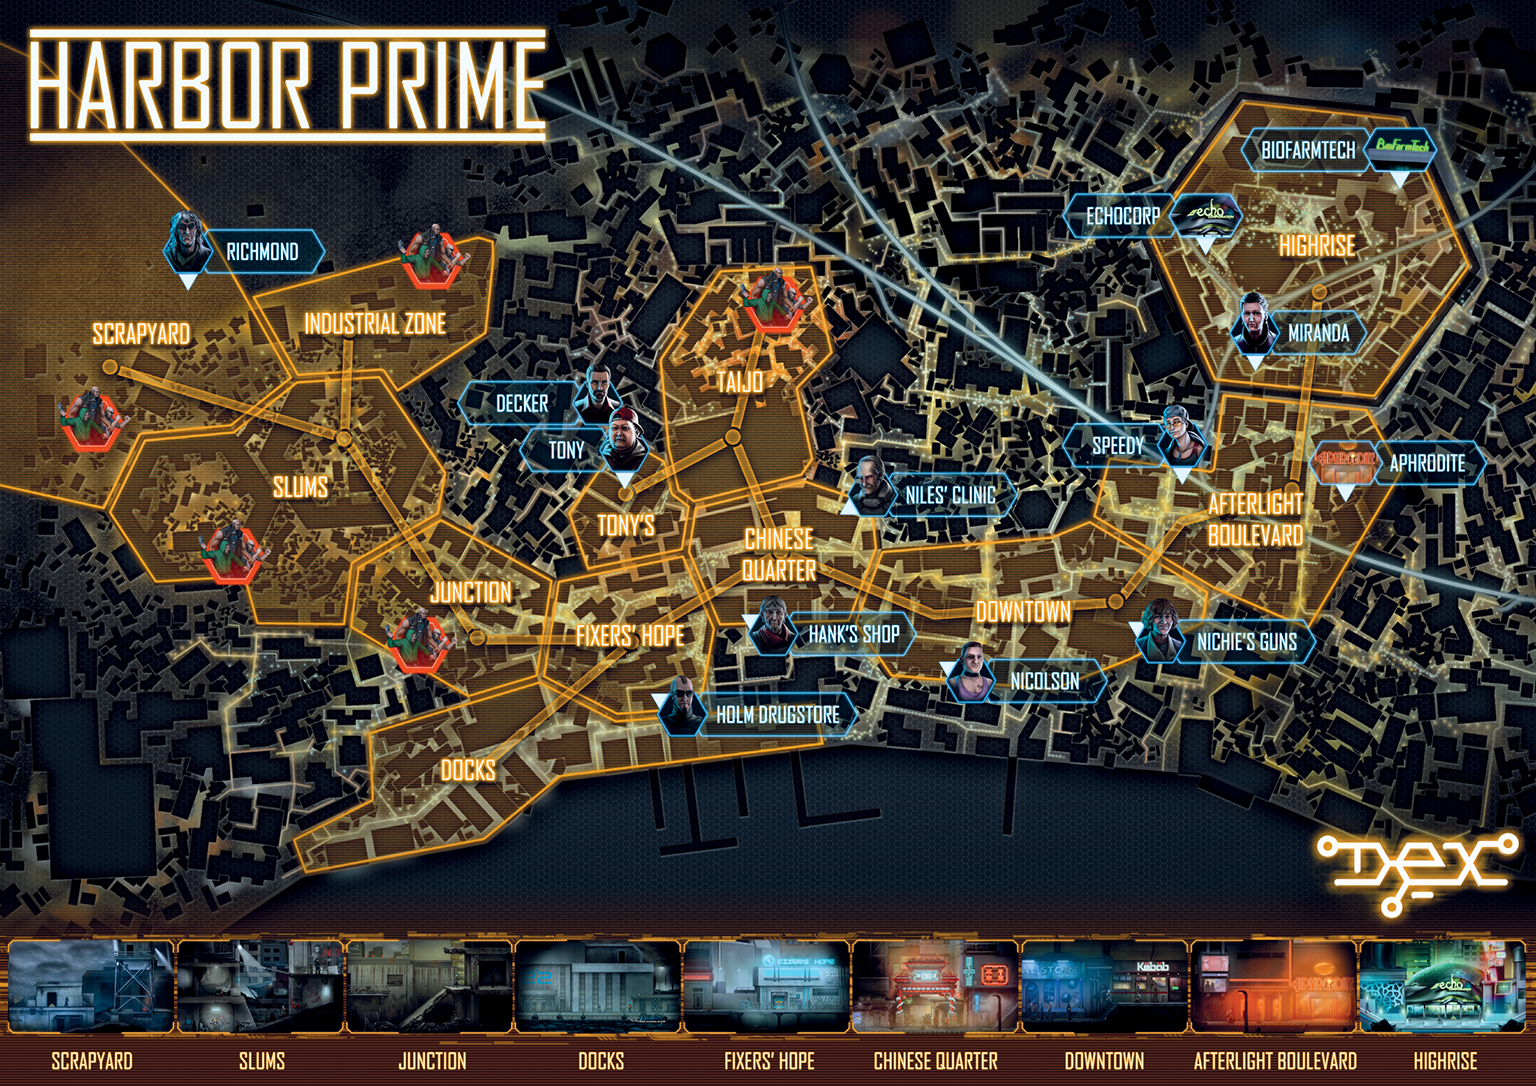 One of the bonuses you get from playing the Dex demo - a map of Harbor Prime! See more at http://drnilesclinic.com